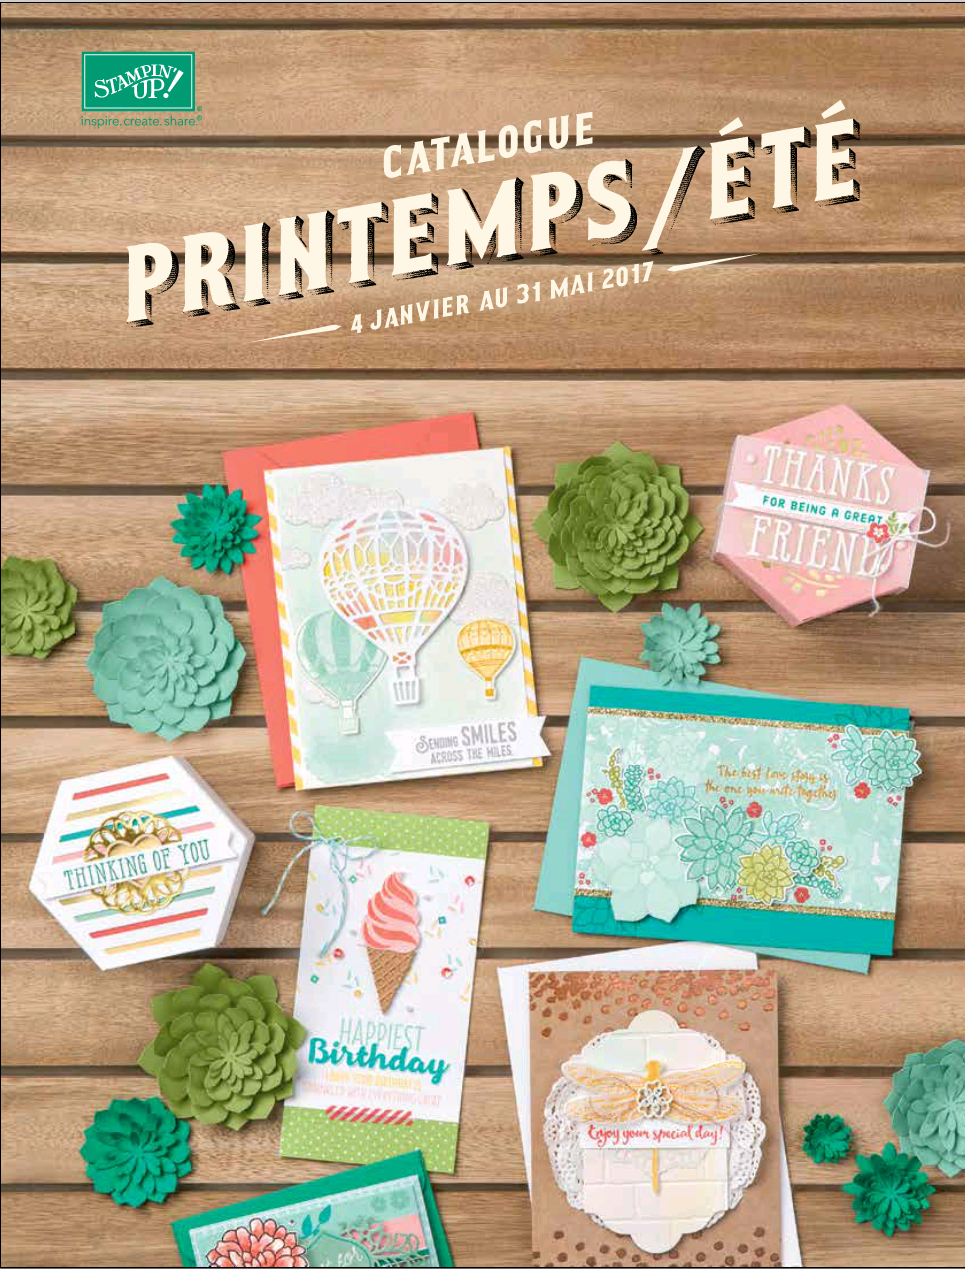 Catalogue saisonnier Printemps/Eté 2017